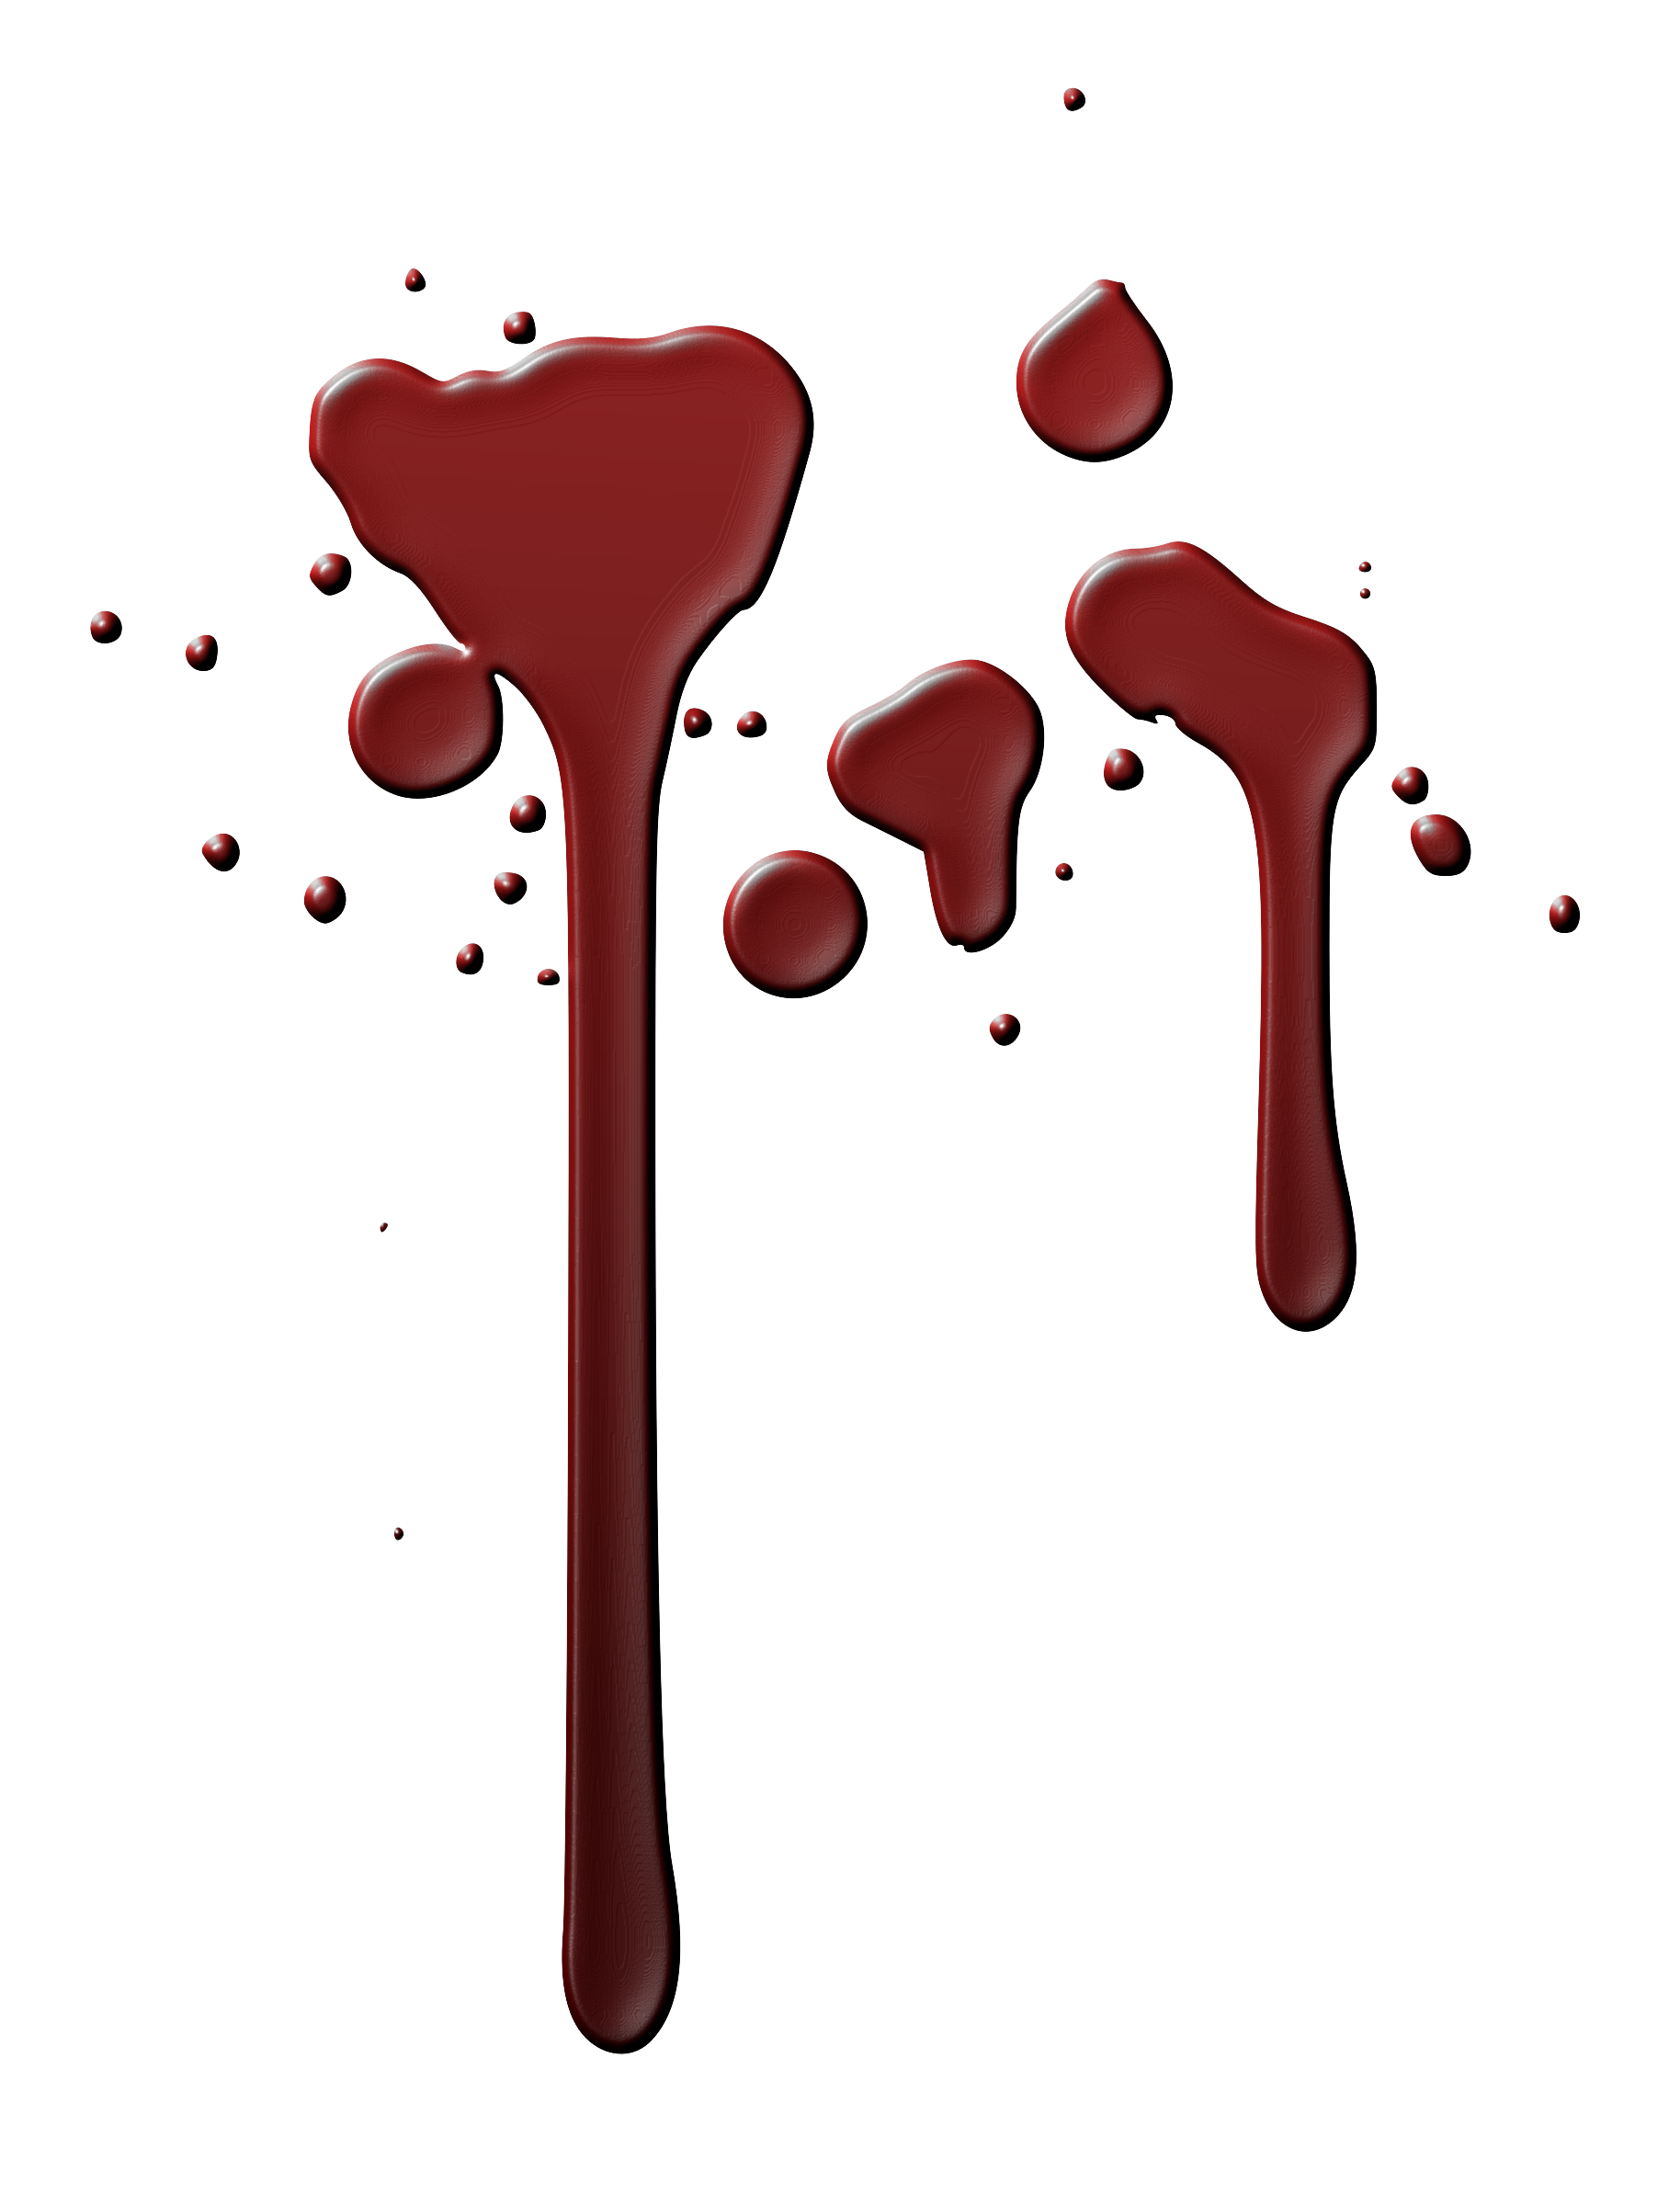 Blood clipart blood spill. Big image png